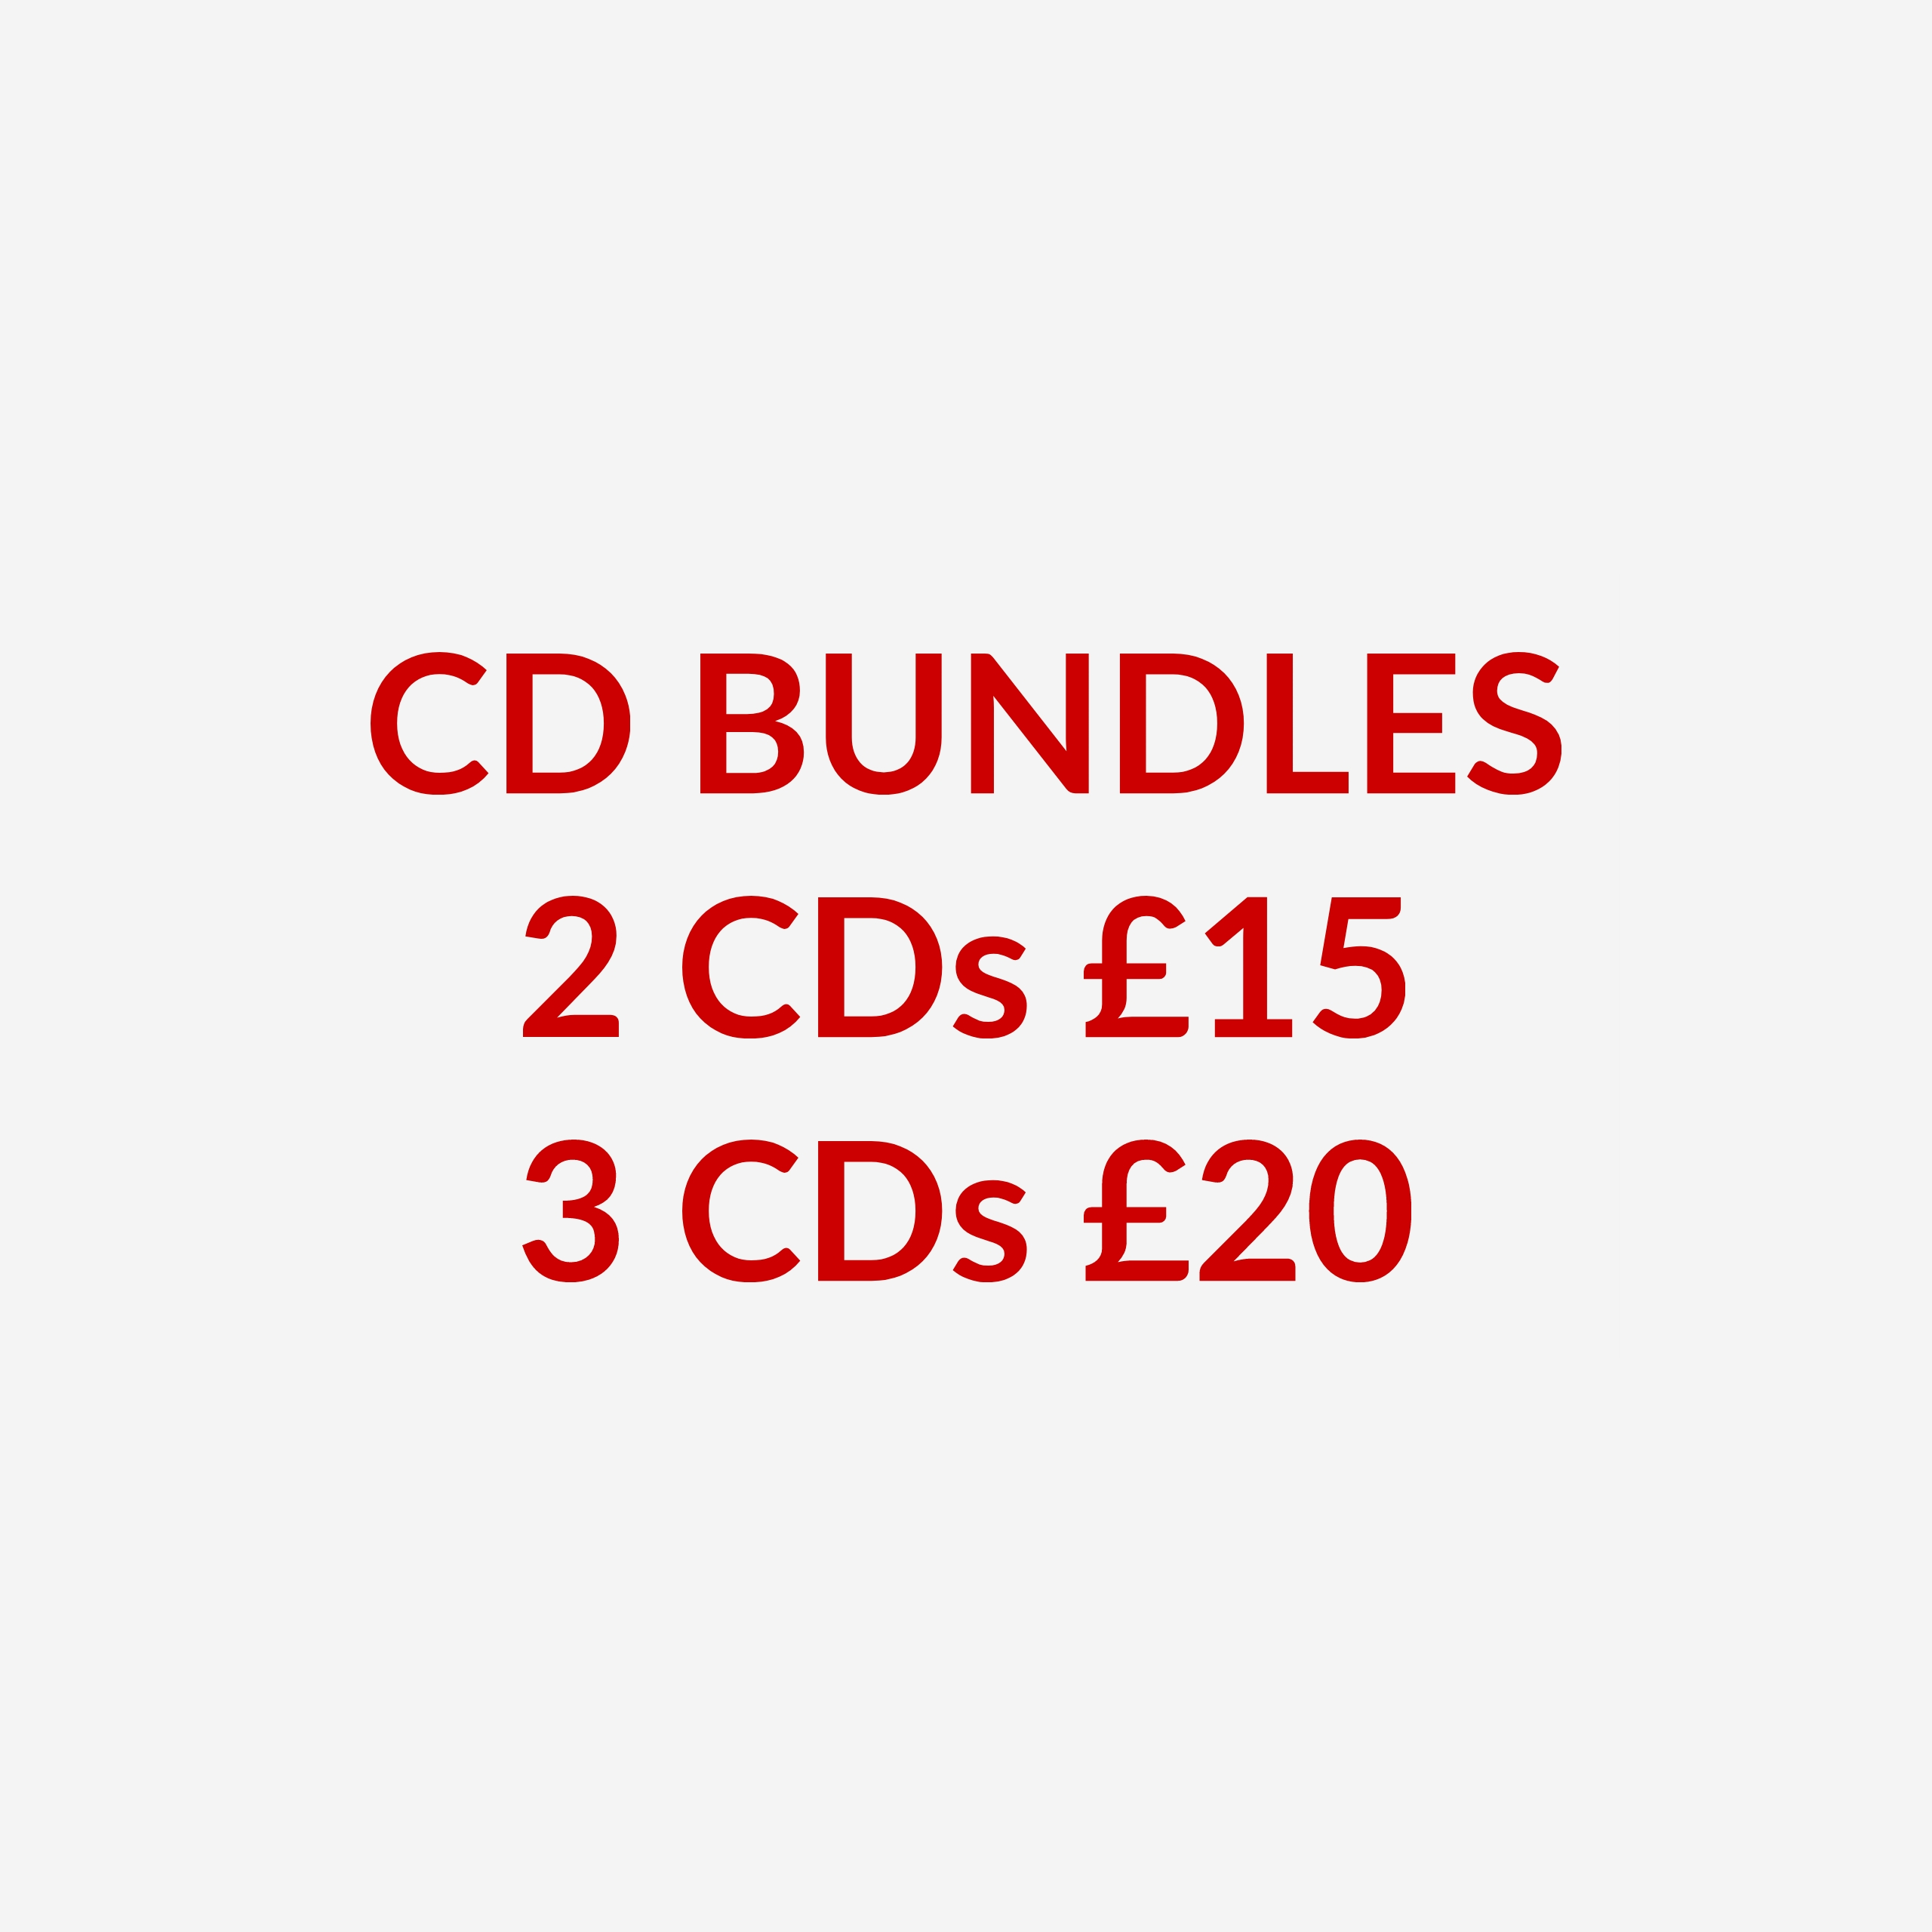 CD Bundles